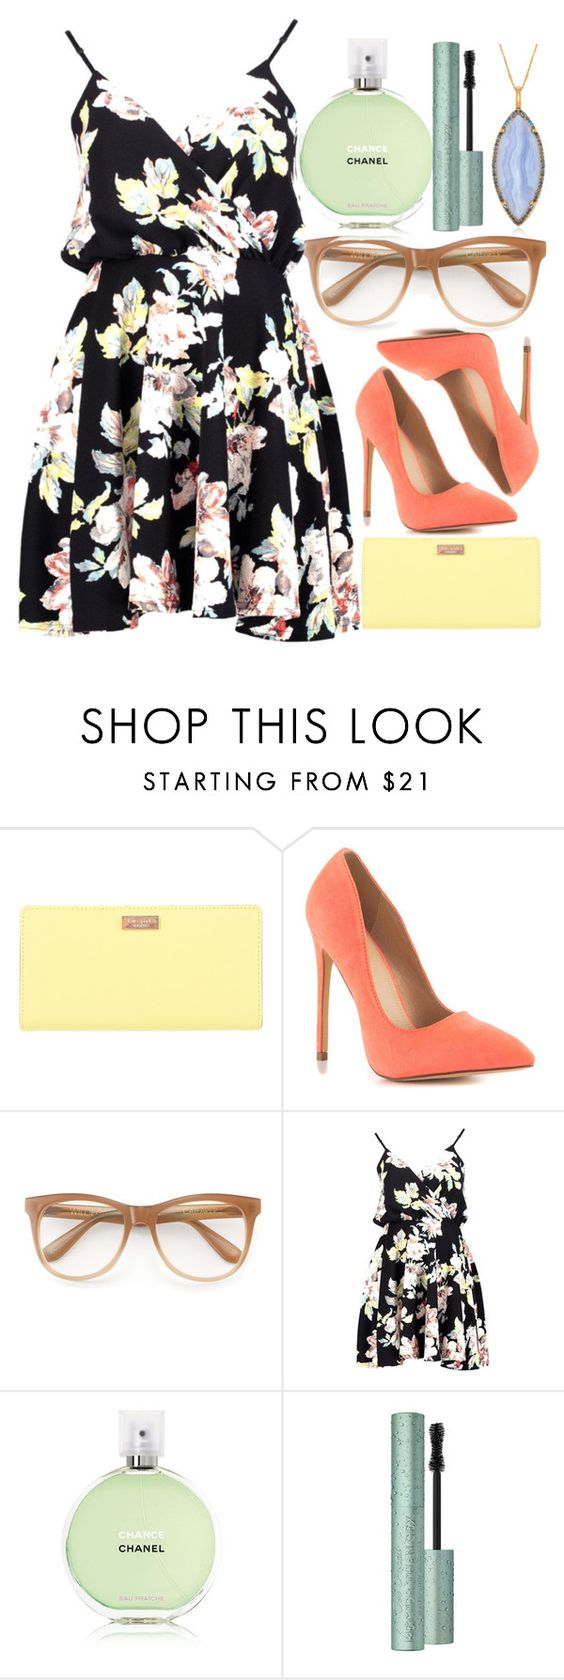 """""""Outside Fun"""" by egordon2 ❤ liked on Polyvore featuring Kate Spade, Liliana, Wildfox, Boohoo, Chanel, Too Faced Cosmetics, Alexandra Alberta, bordeaux, yoins and yoinscollection"""